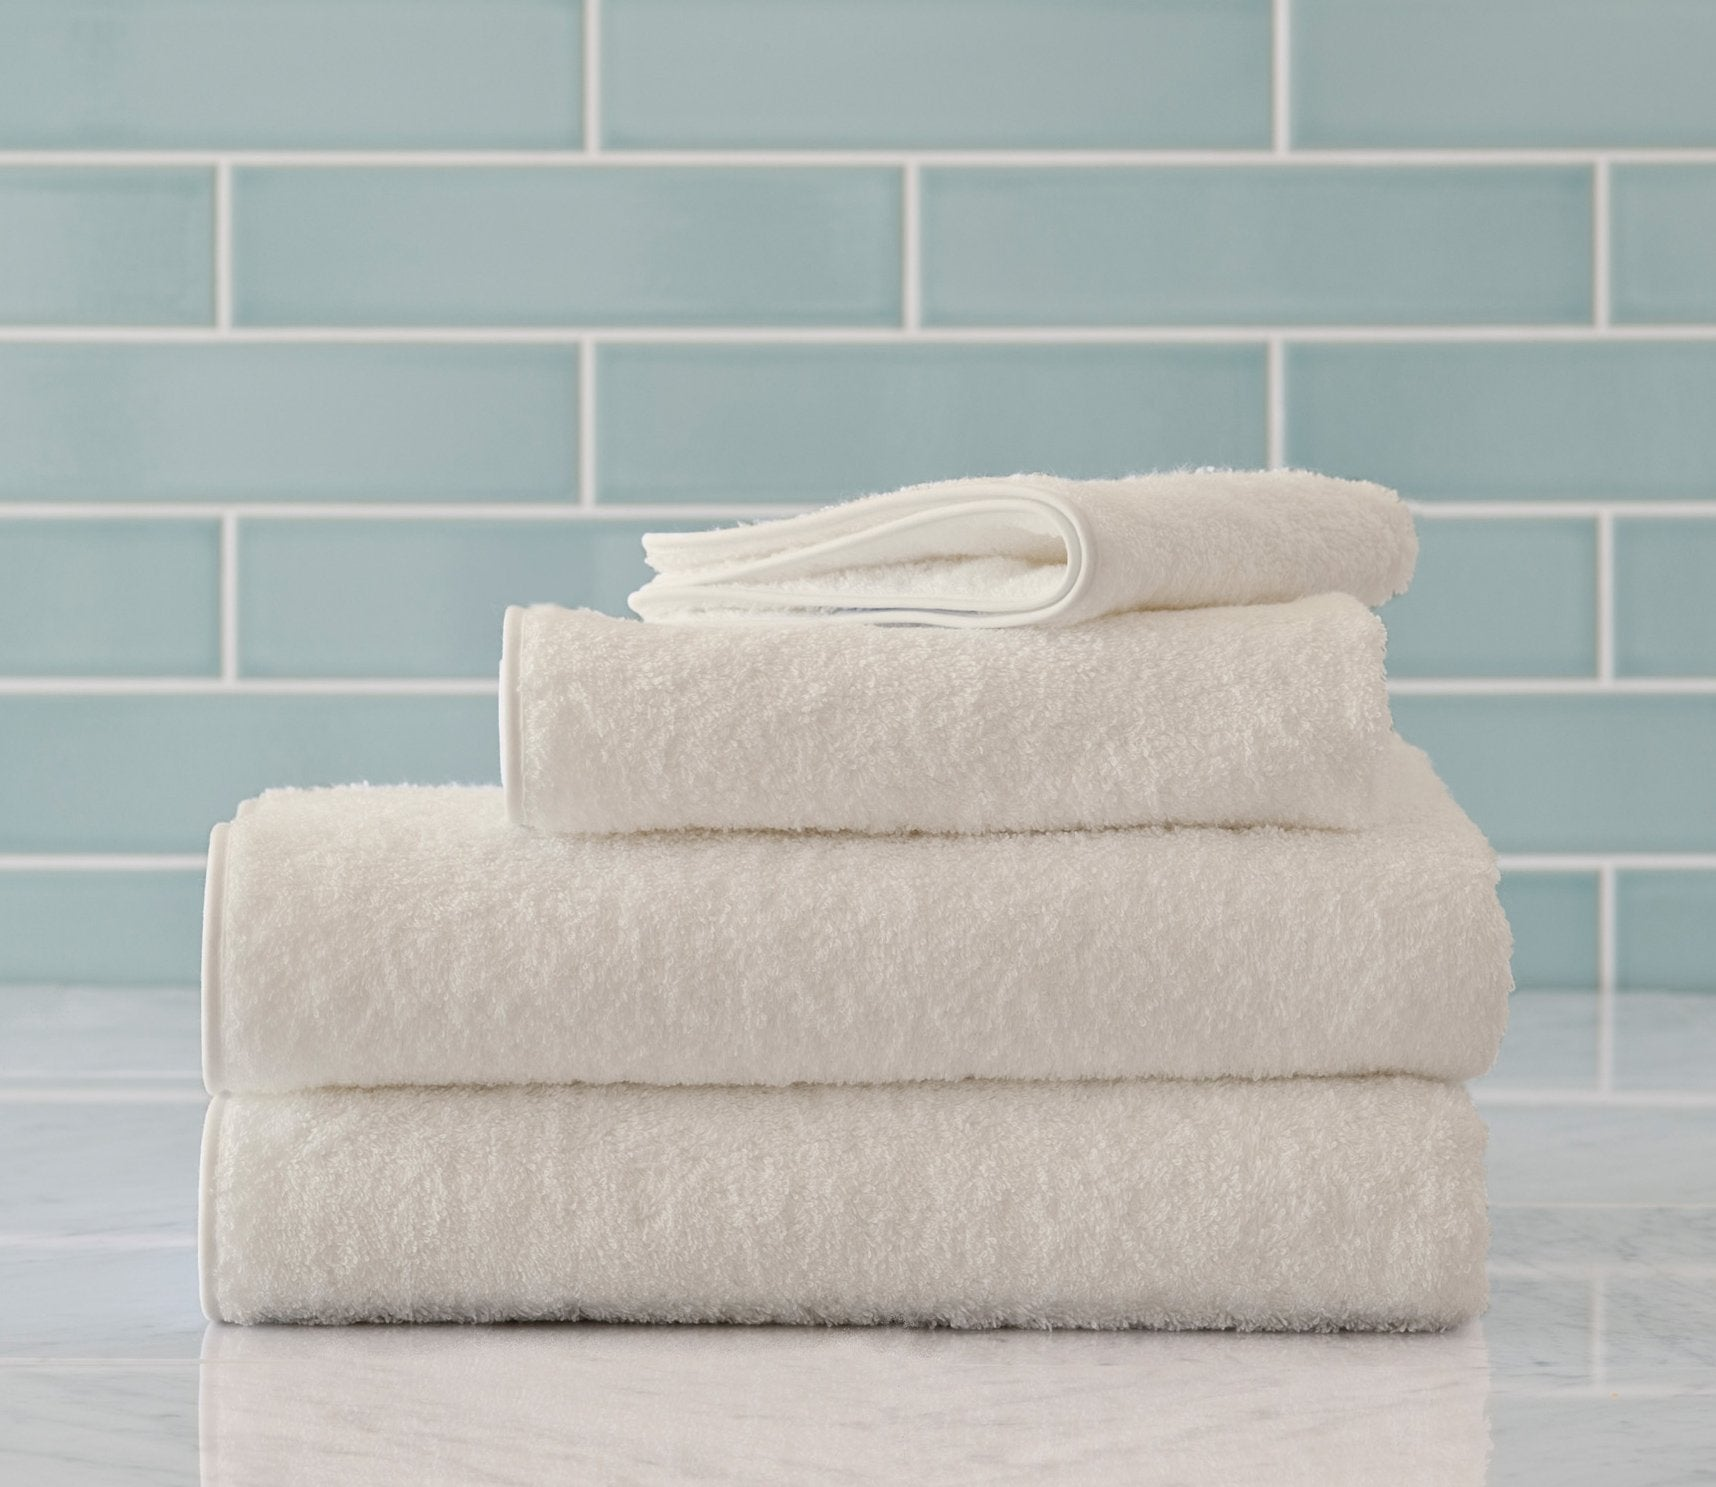 Cairo Bath Towels Ivory Product Image 1